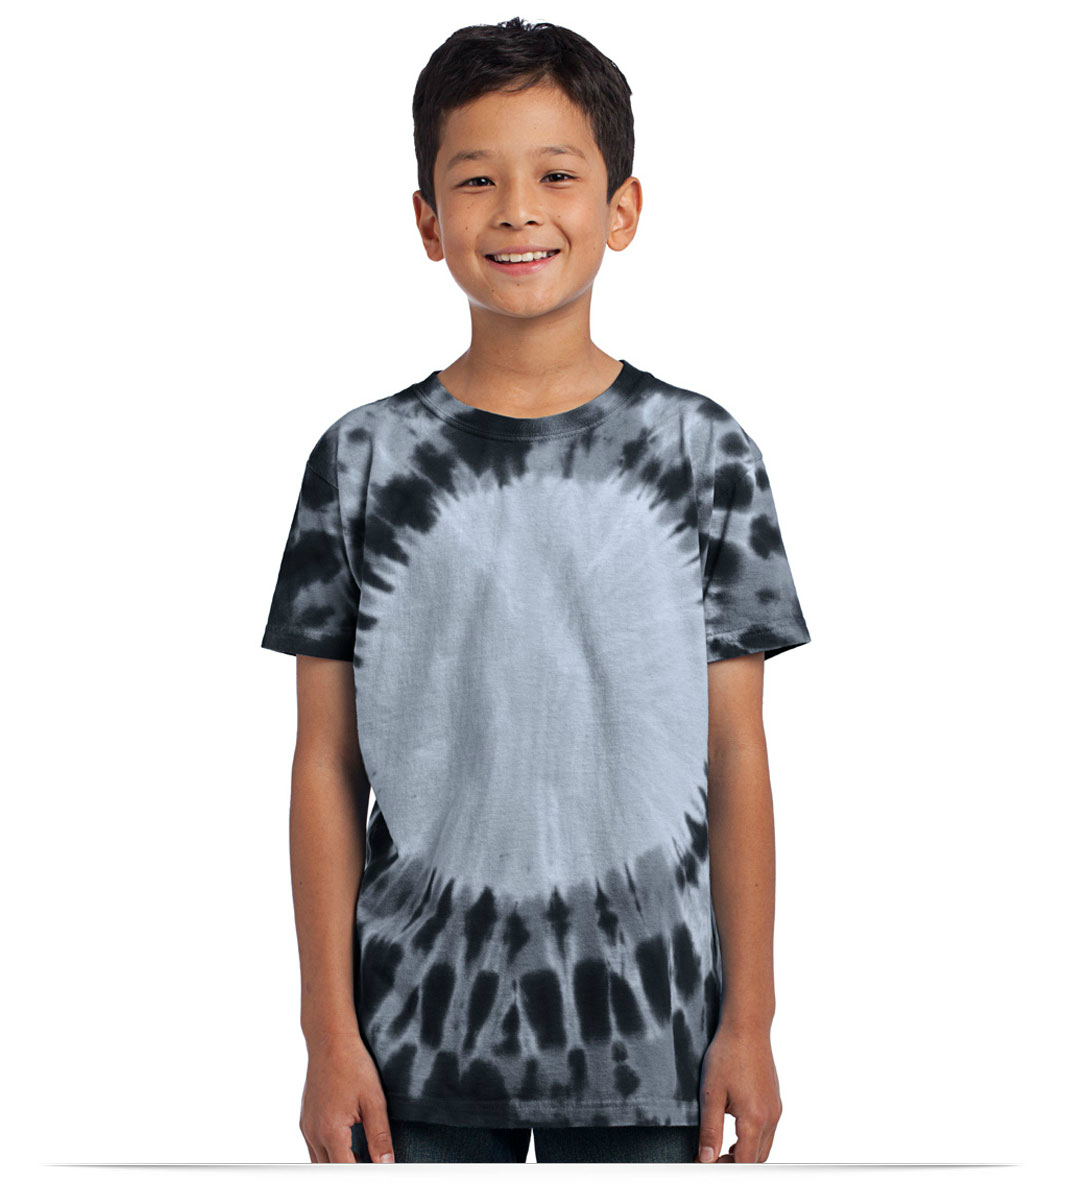 c4d0a7c4337 Custom Printed Port and Company Youth Tie-Dye Tee at AllStar Logo